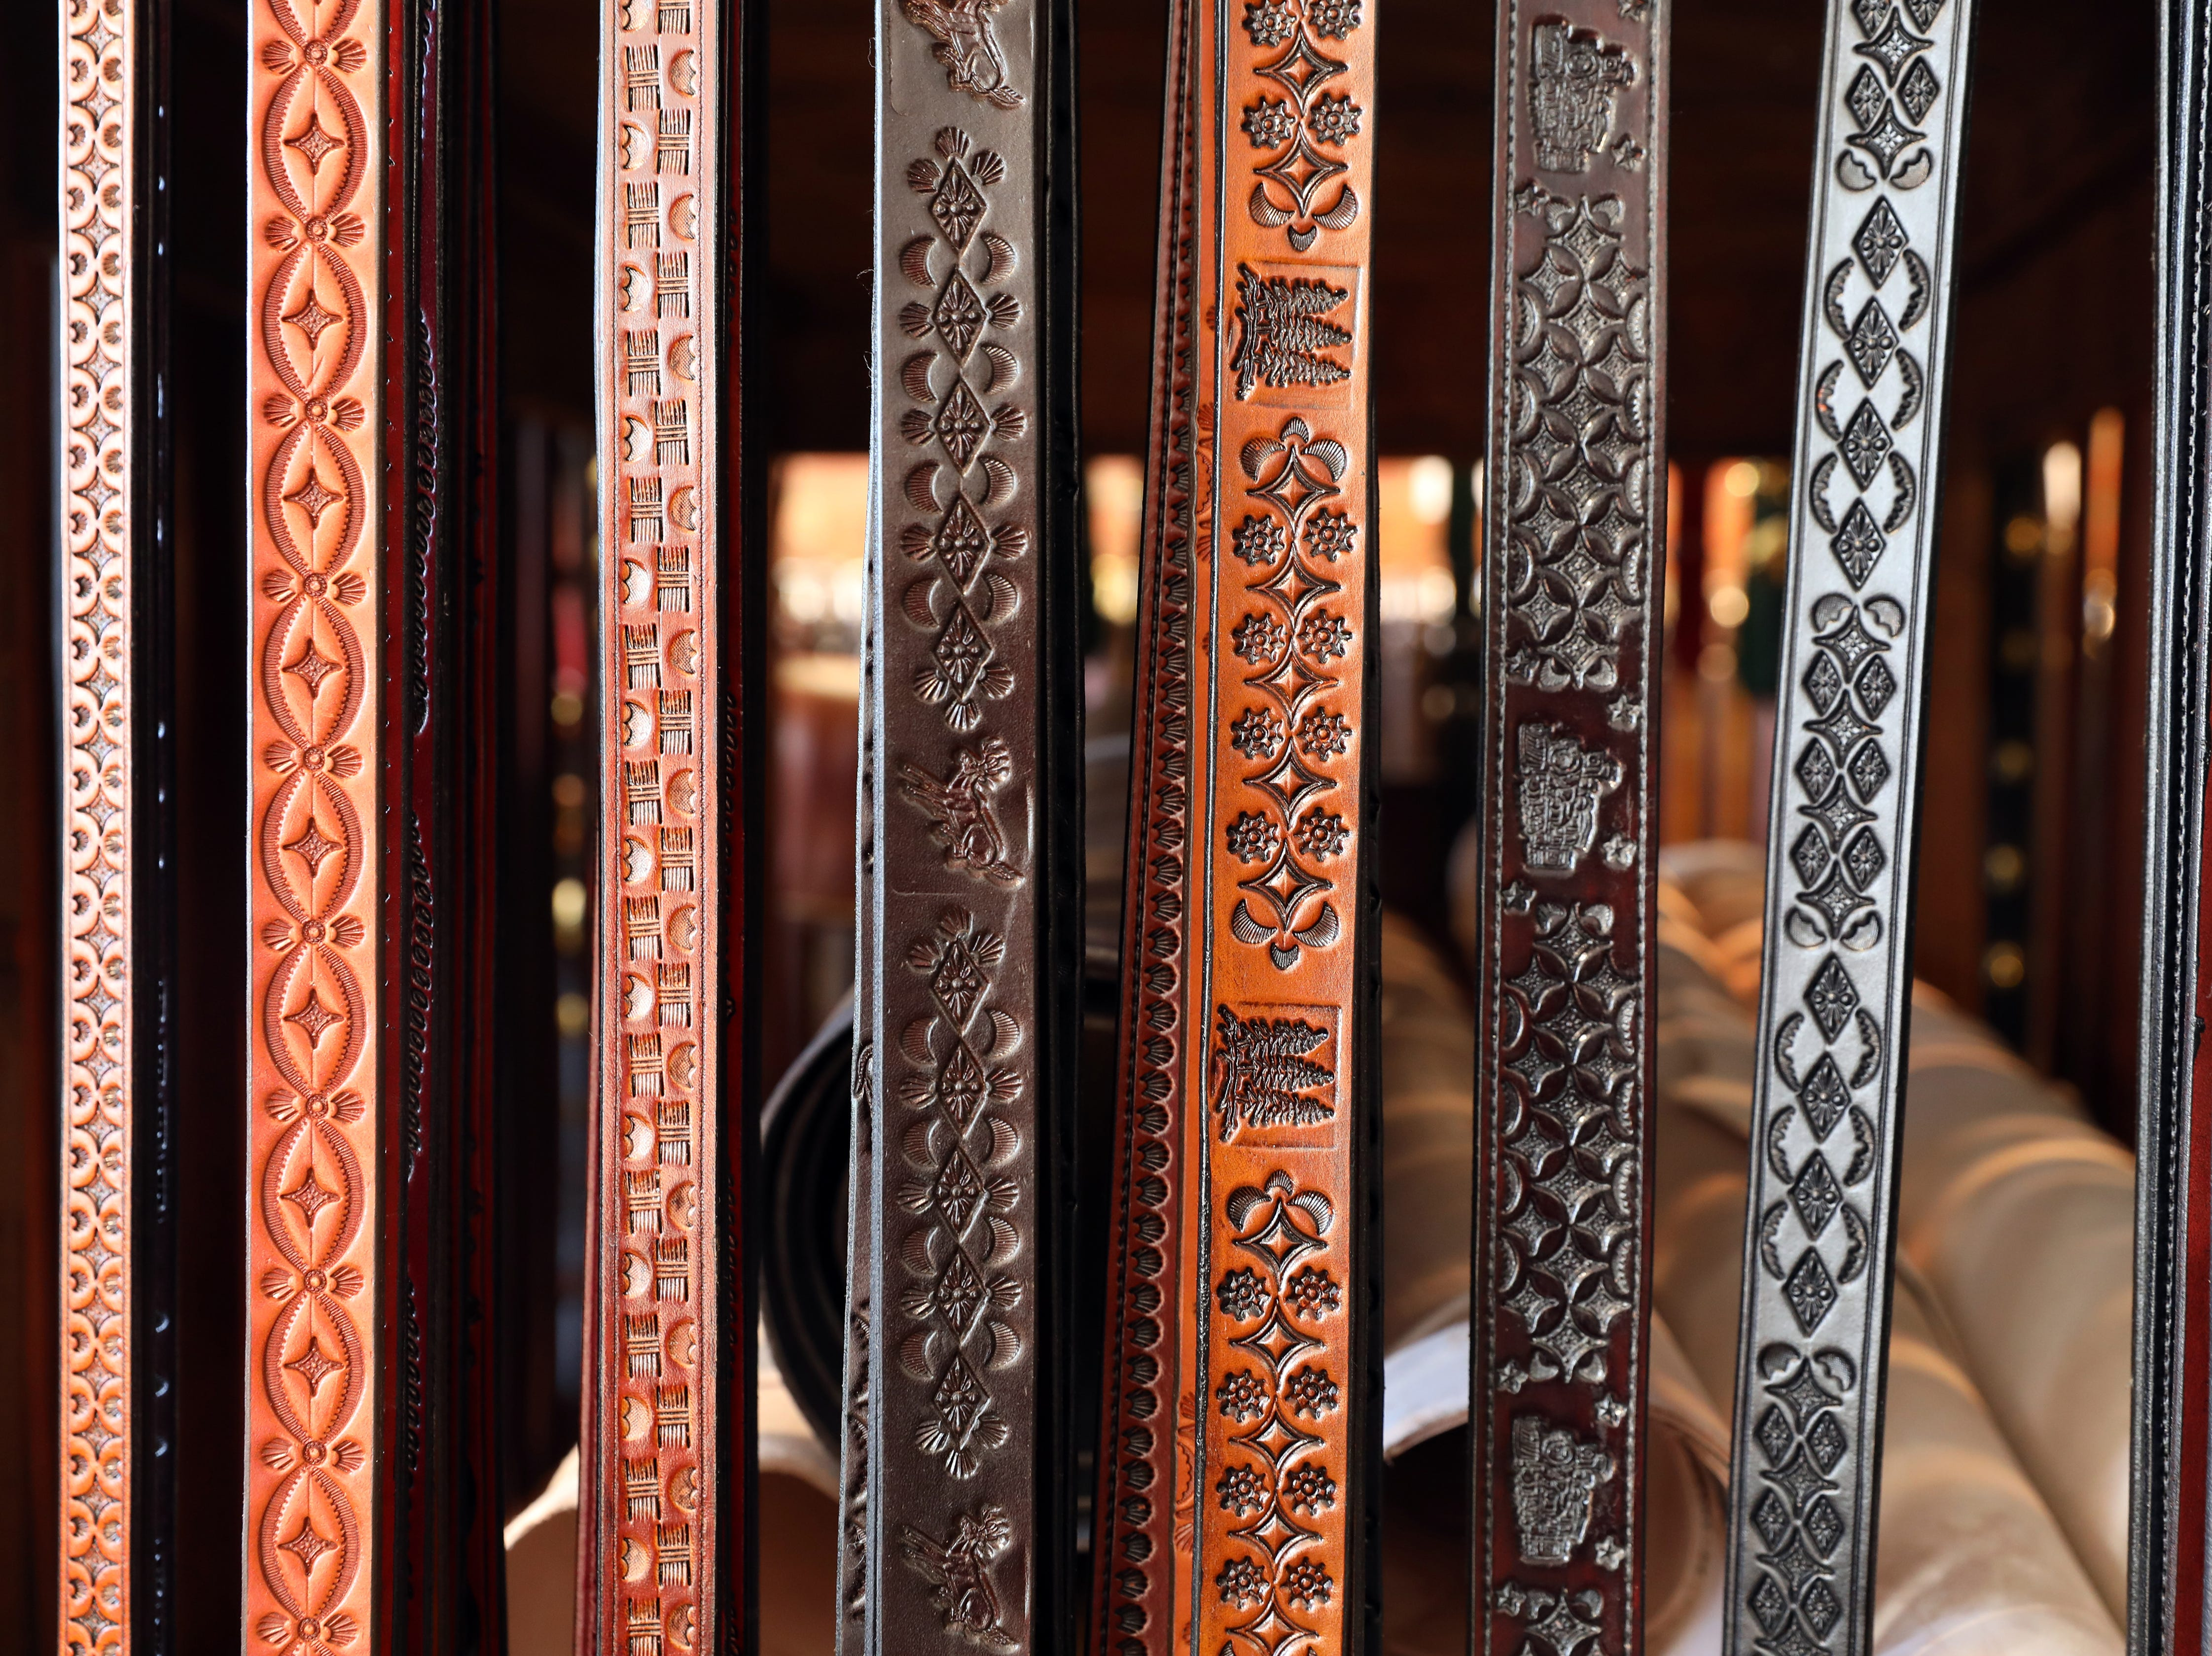 Handmade leather belts in River Ridge Leather Company in Roscoe Village.